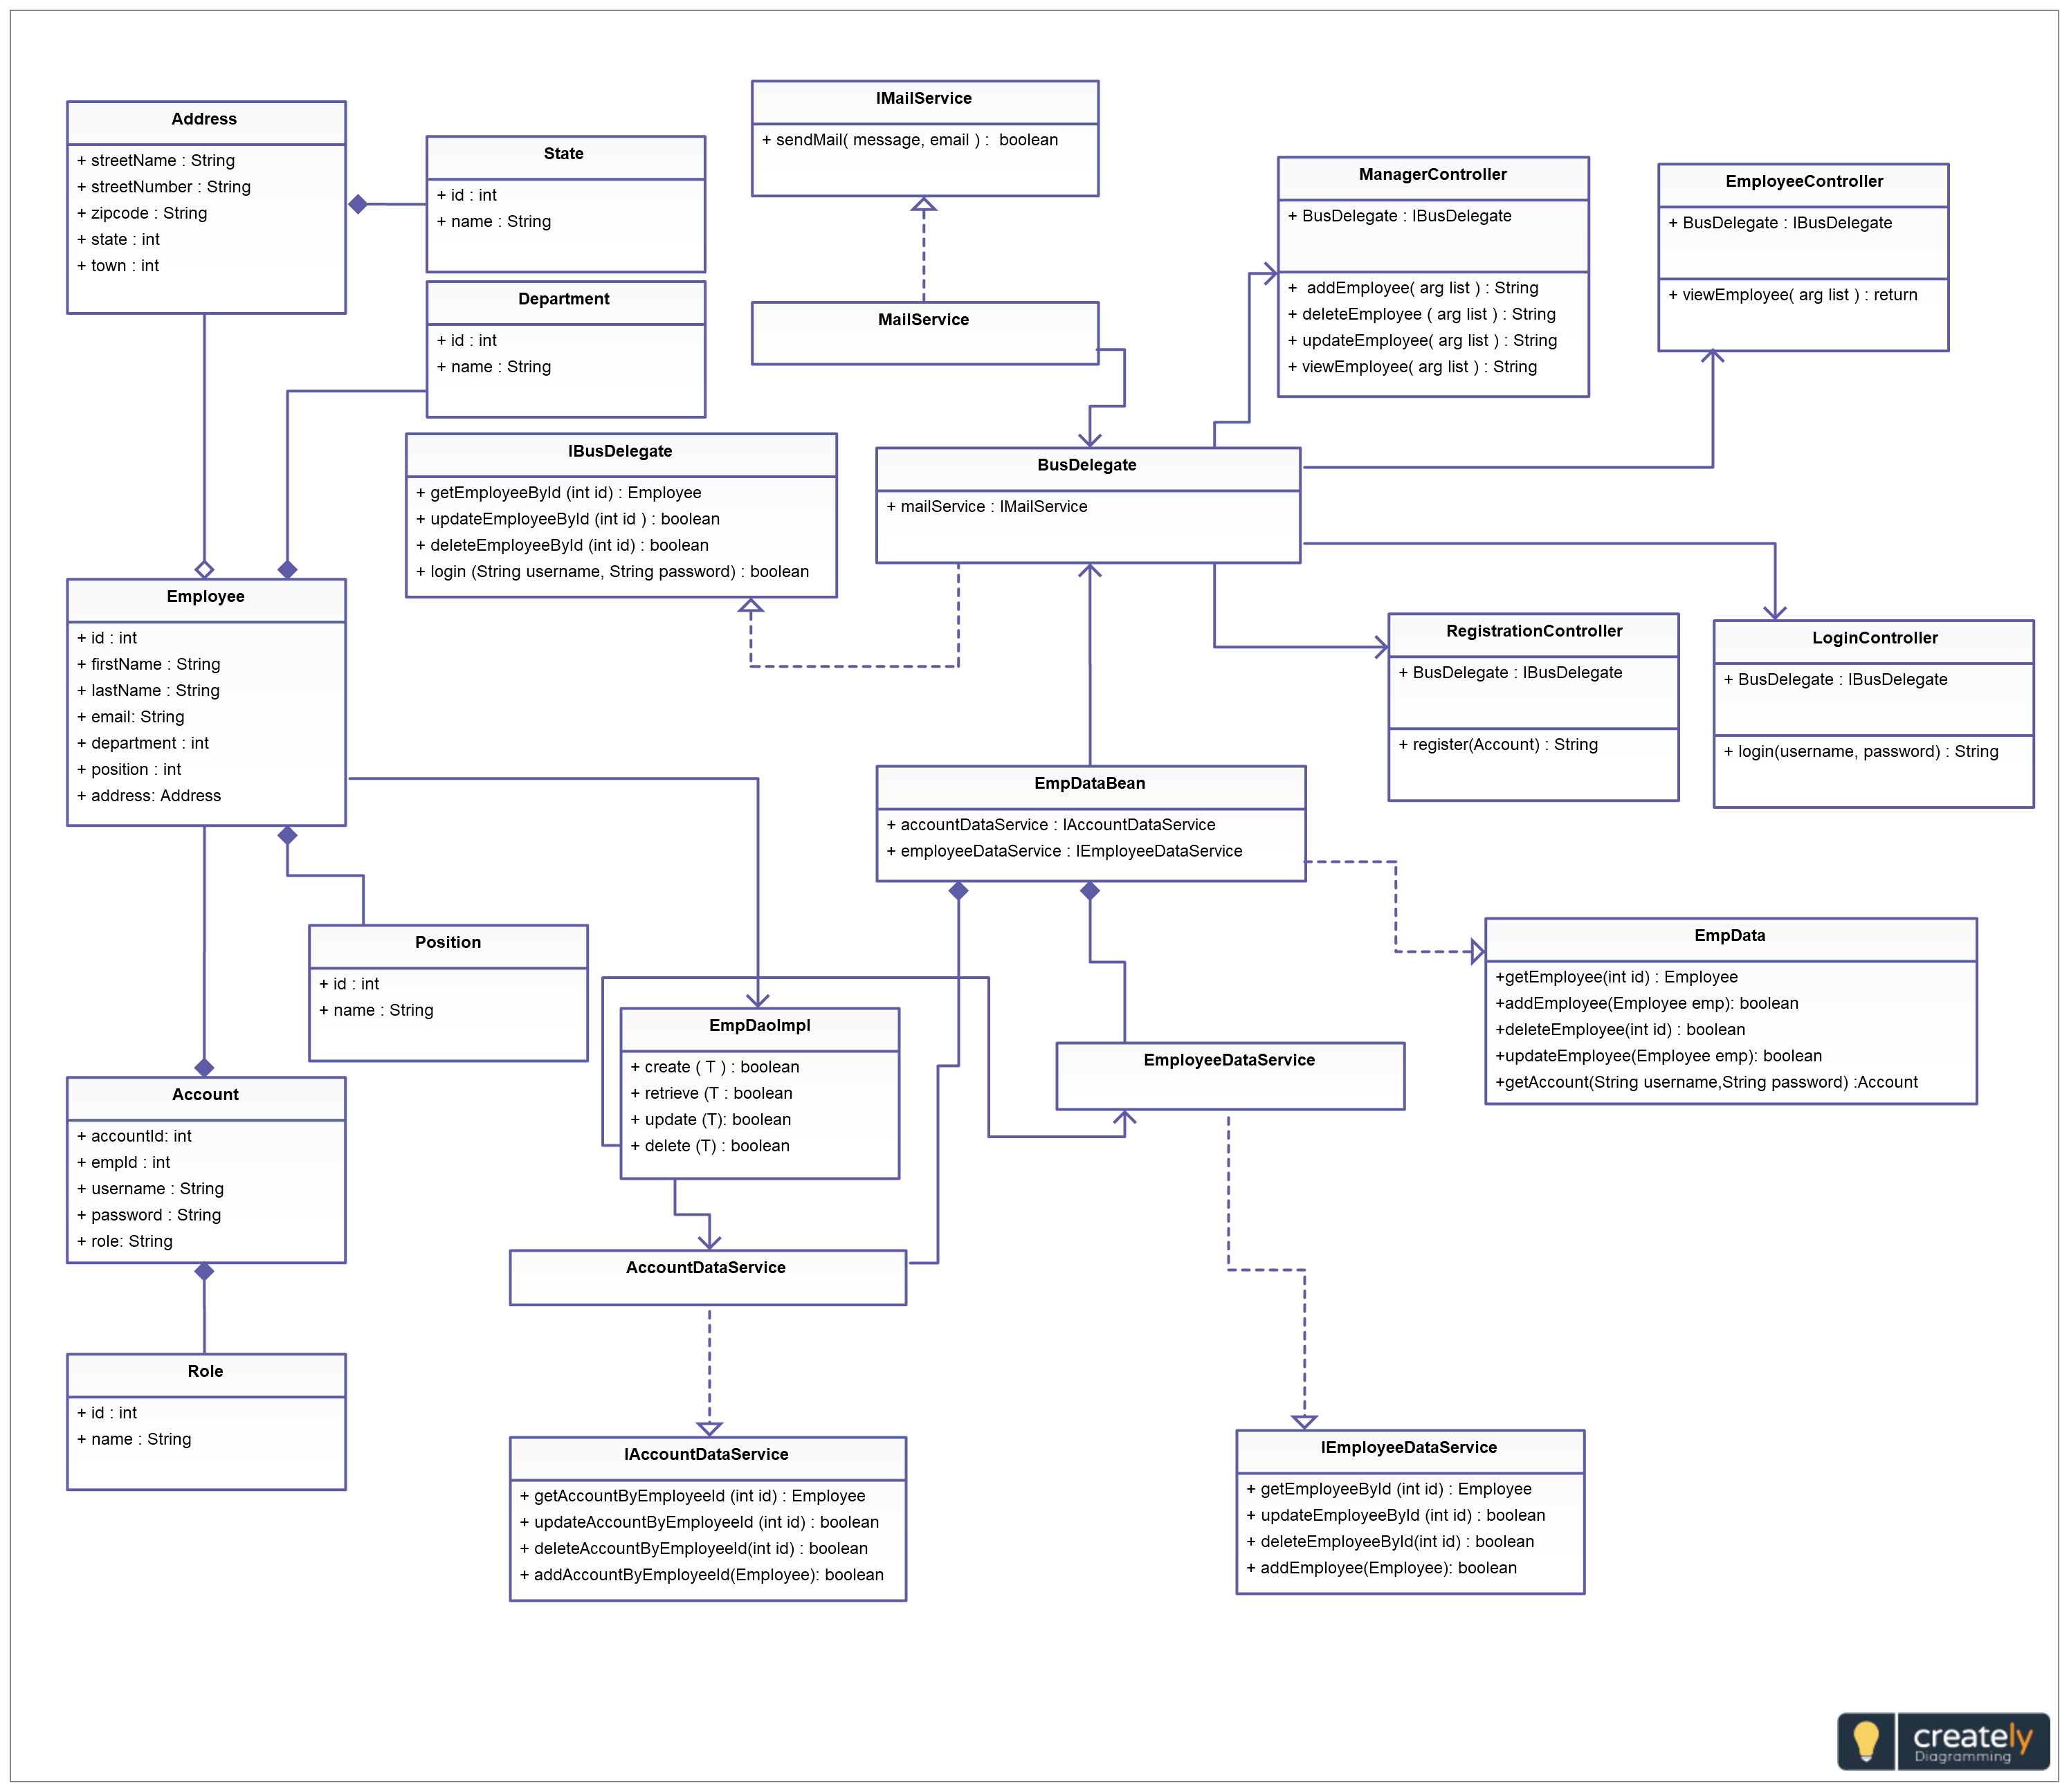 medium resolution of click on the example to edit online and download as an image class classdiagram uml umlclass employee management system software apps